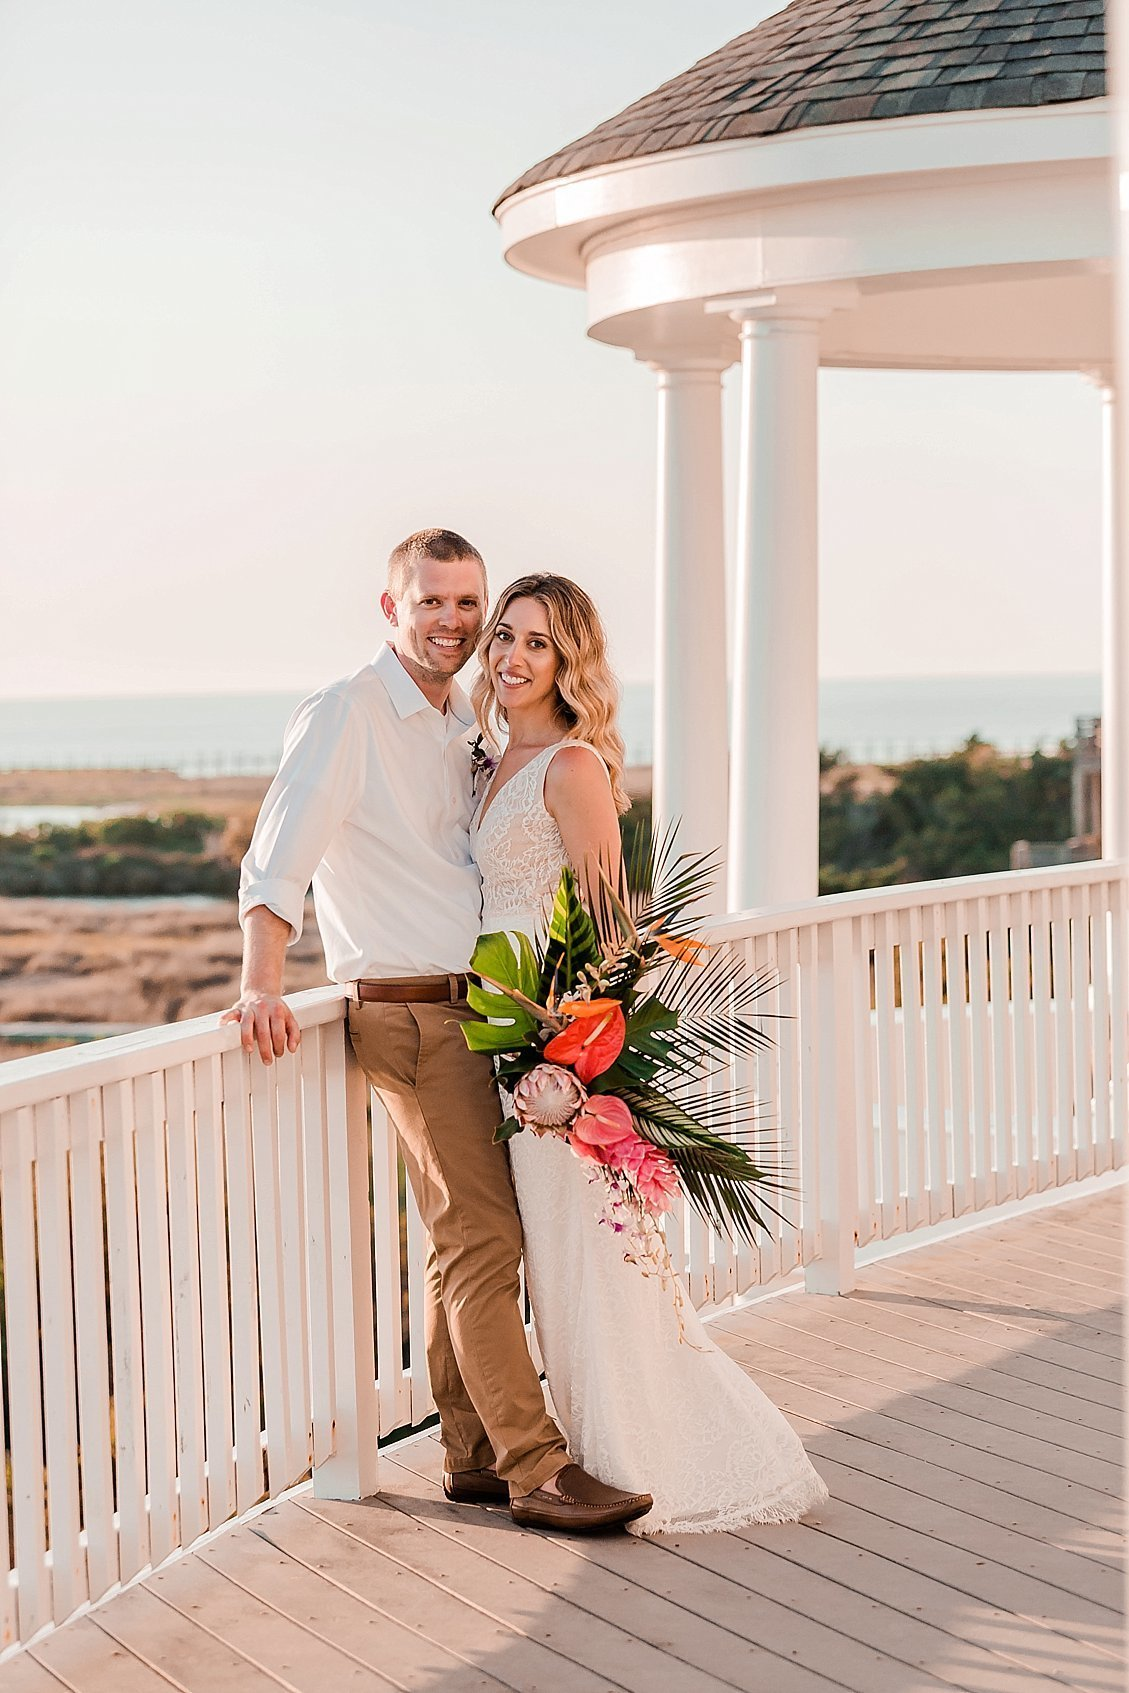 sharonelizabethphotography-obxwedding-rodanthewedding-obxweddingphotographer-intimatebeachwedding3439